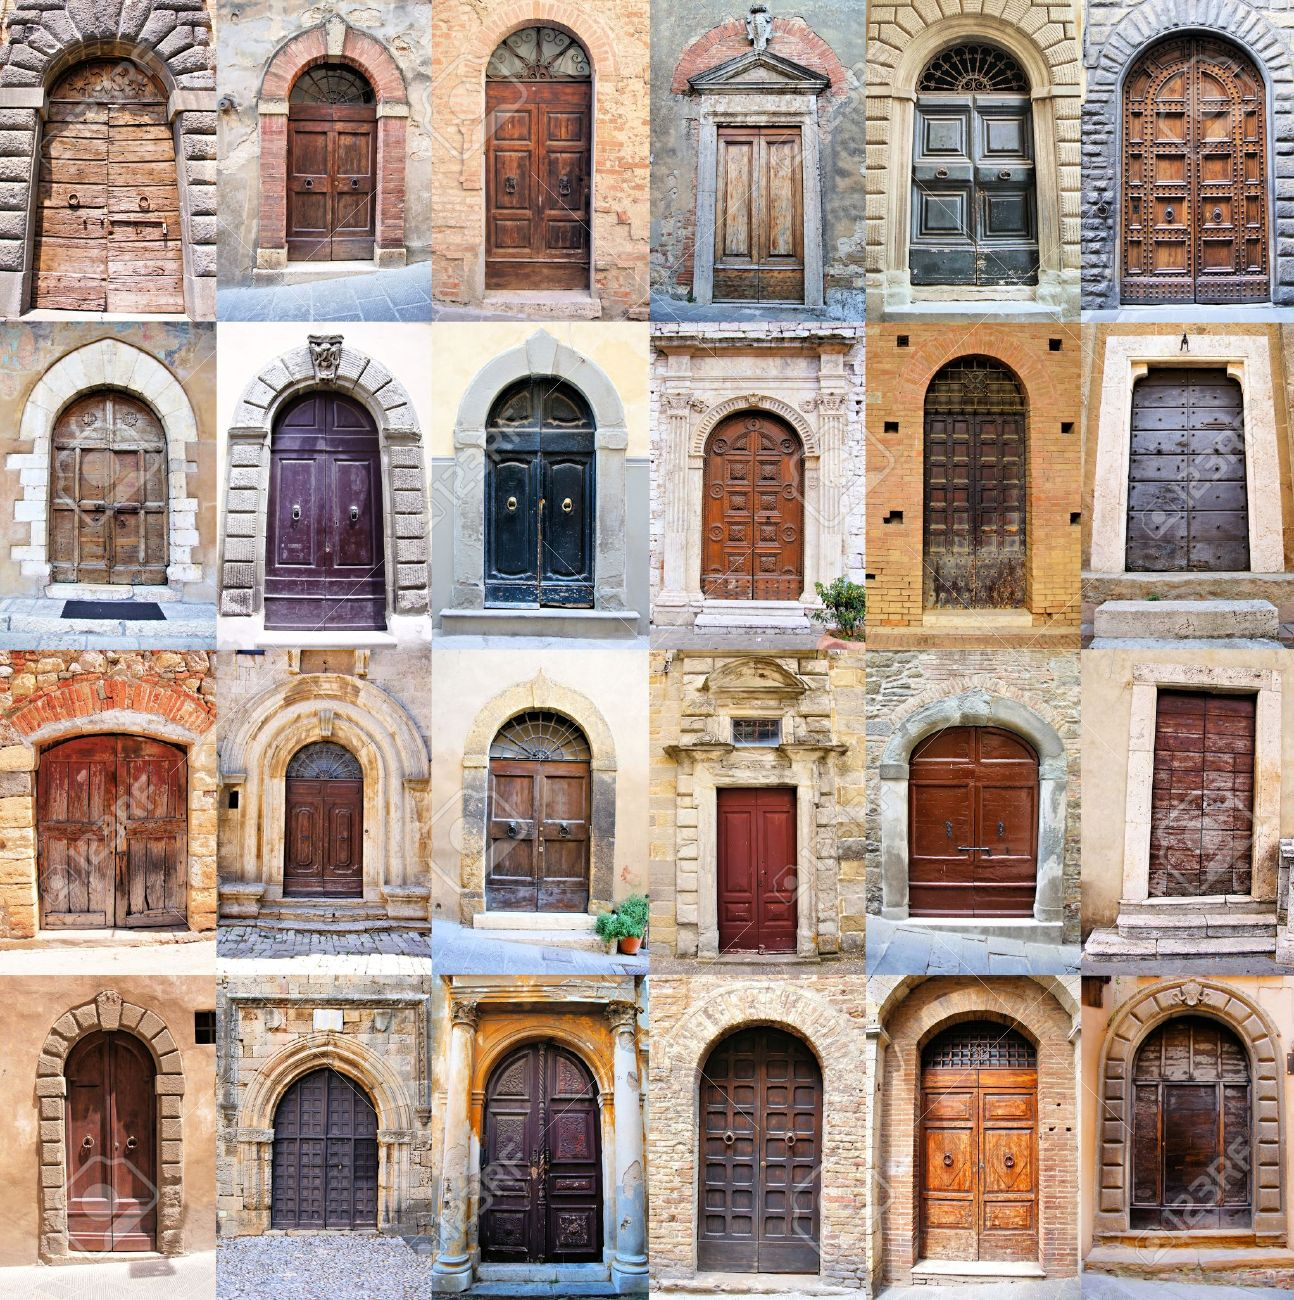 Collage of many old rustic doors from Tuscany Italy Stock Photo - 23208762 & Collage Of Many Old Rustic Doors From Tuscany Italy Stock Photo ...